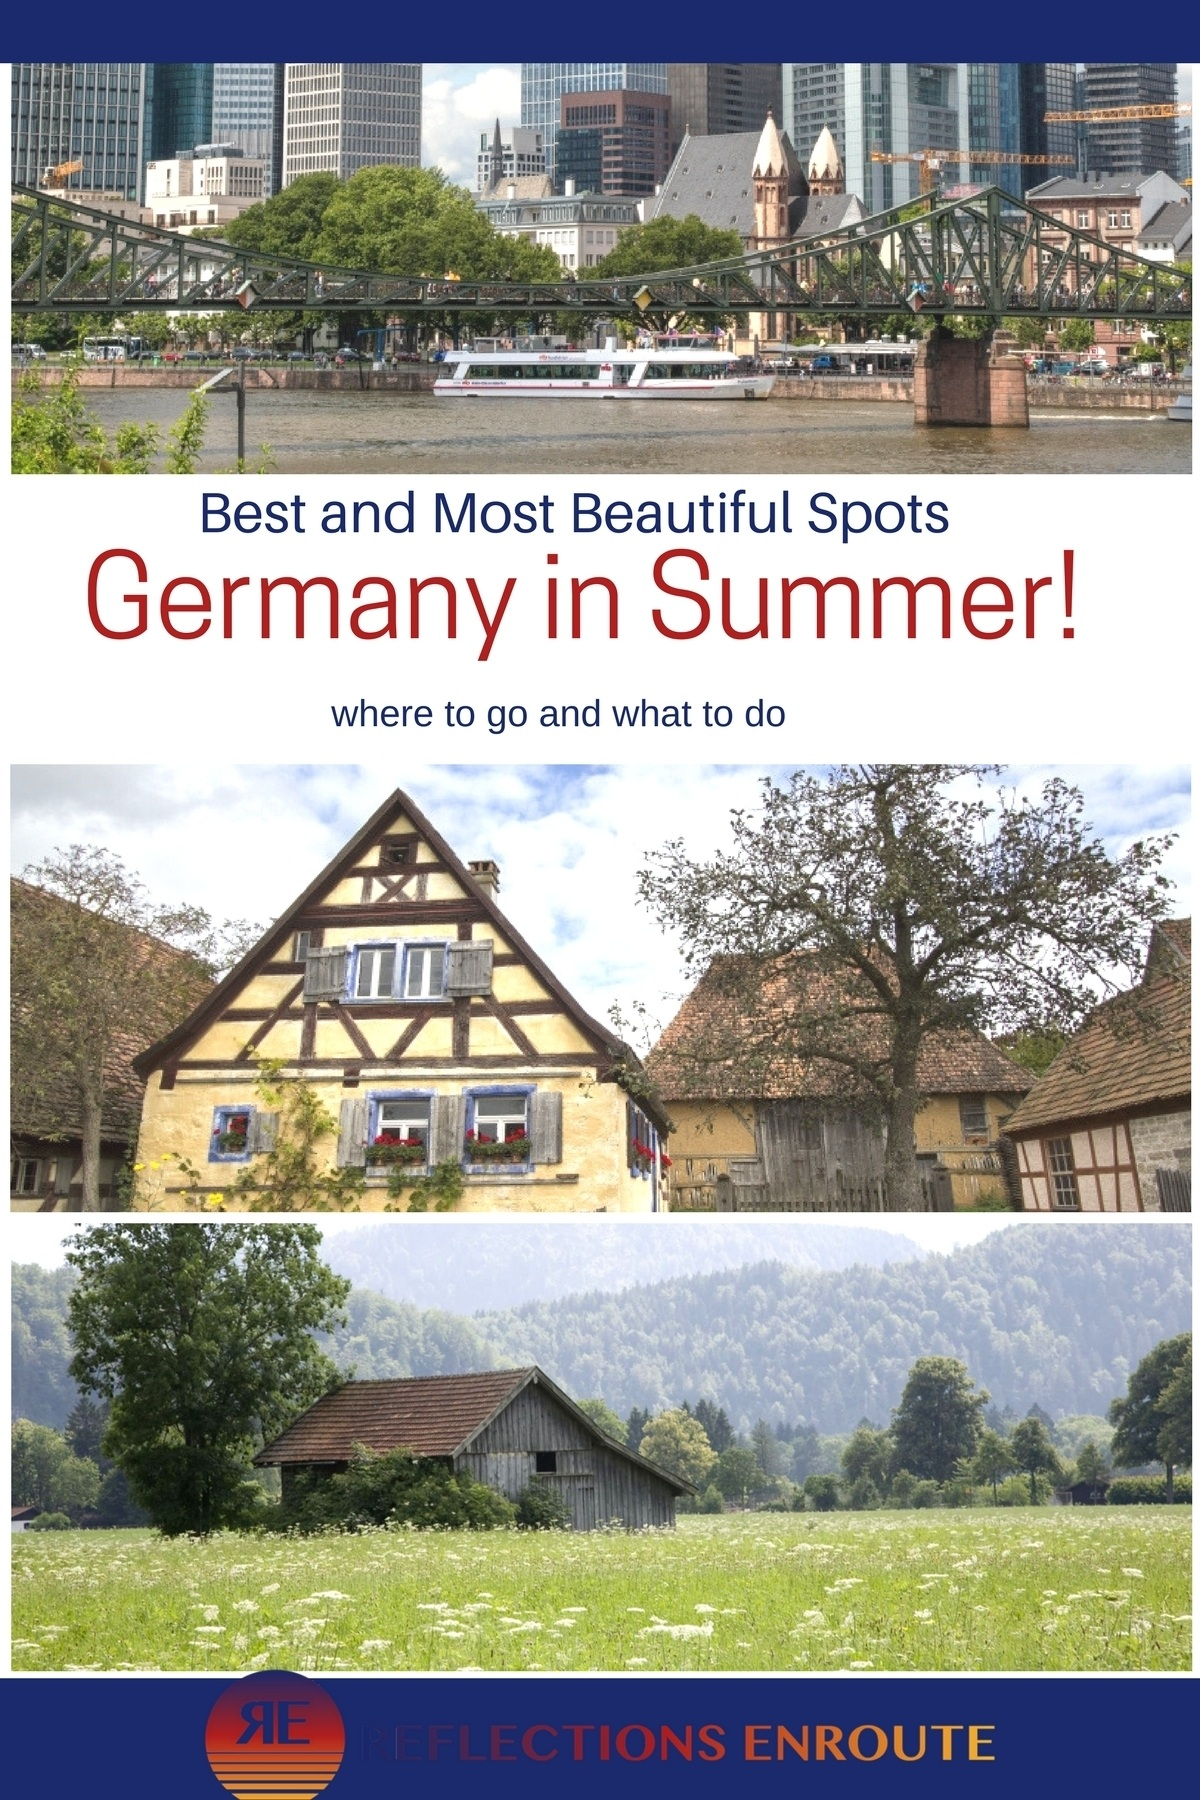 Summer in Germany! It's the best time to come, tour, hike, ride a bike, and finish it off with a great beer!